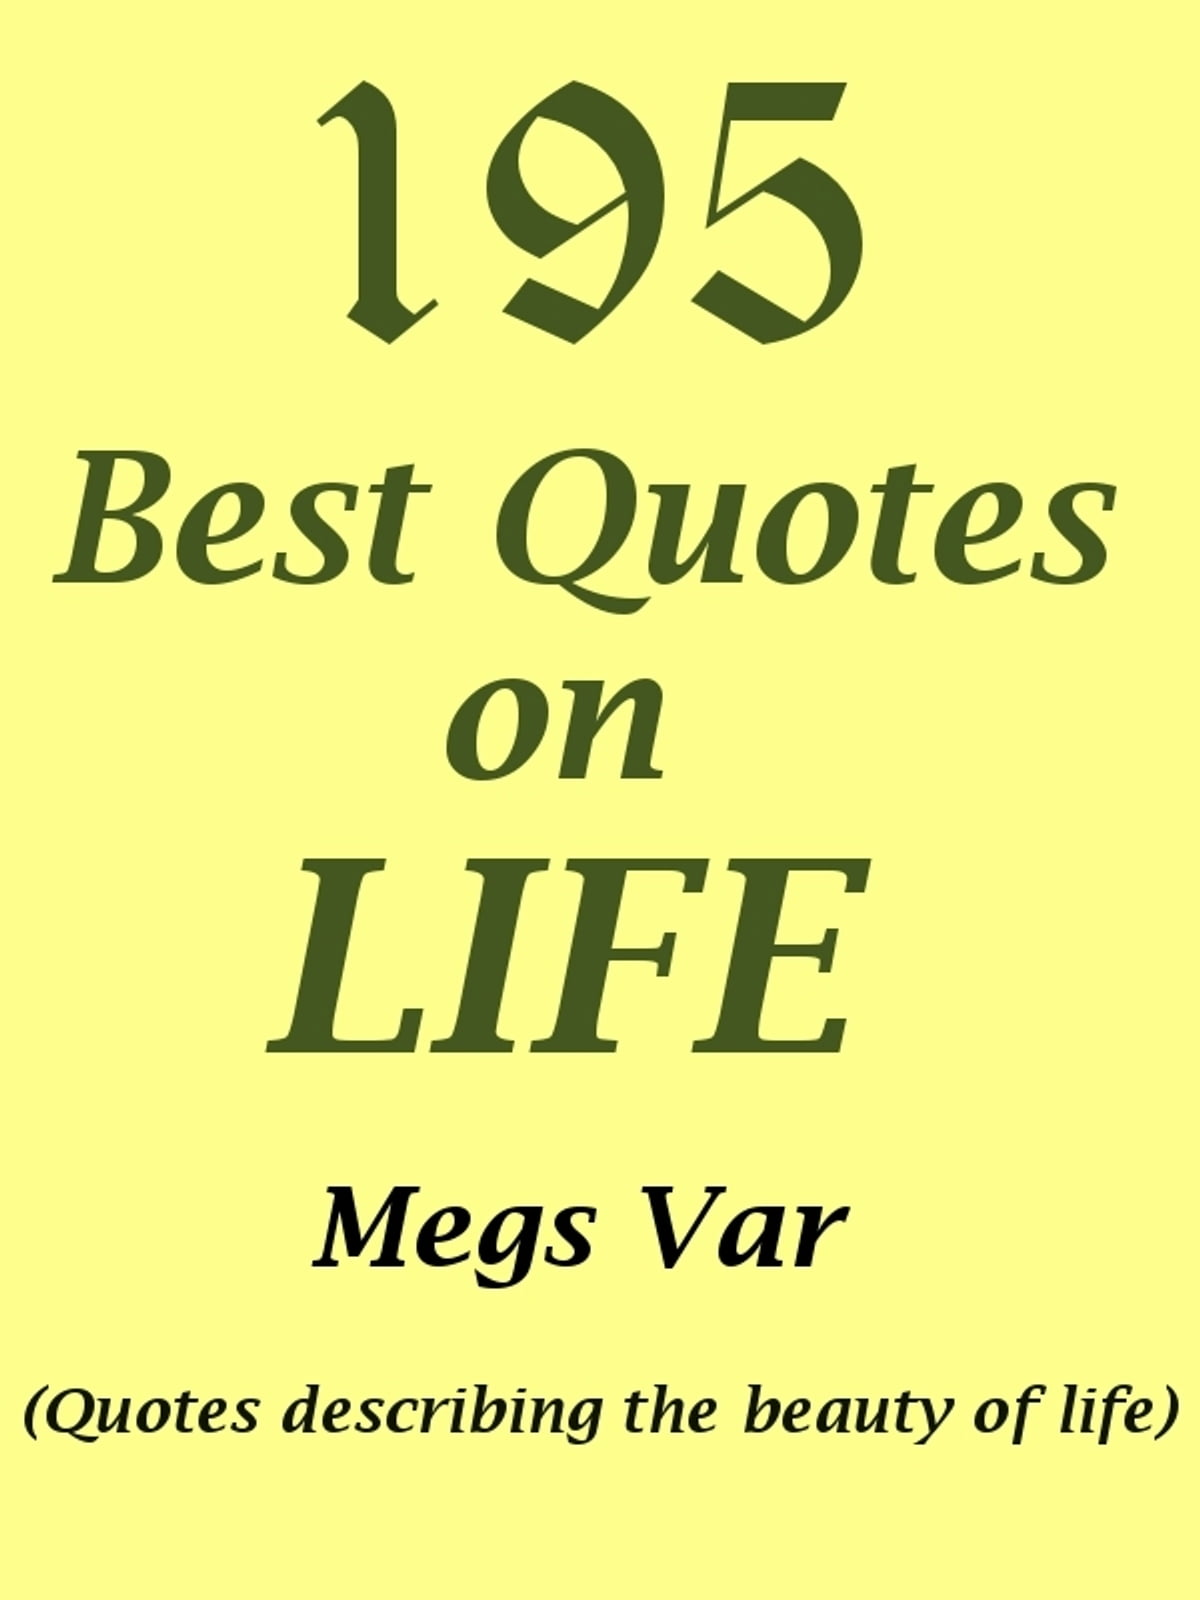 Greatest Quotes On Life Quotes Life Quotes 195 Best Quotes On Life Ebookmegs Var